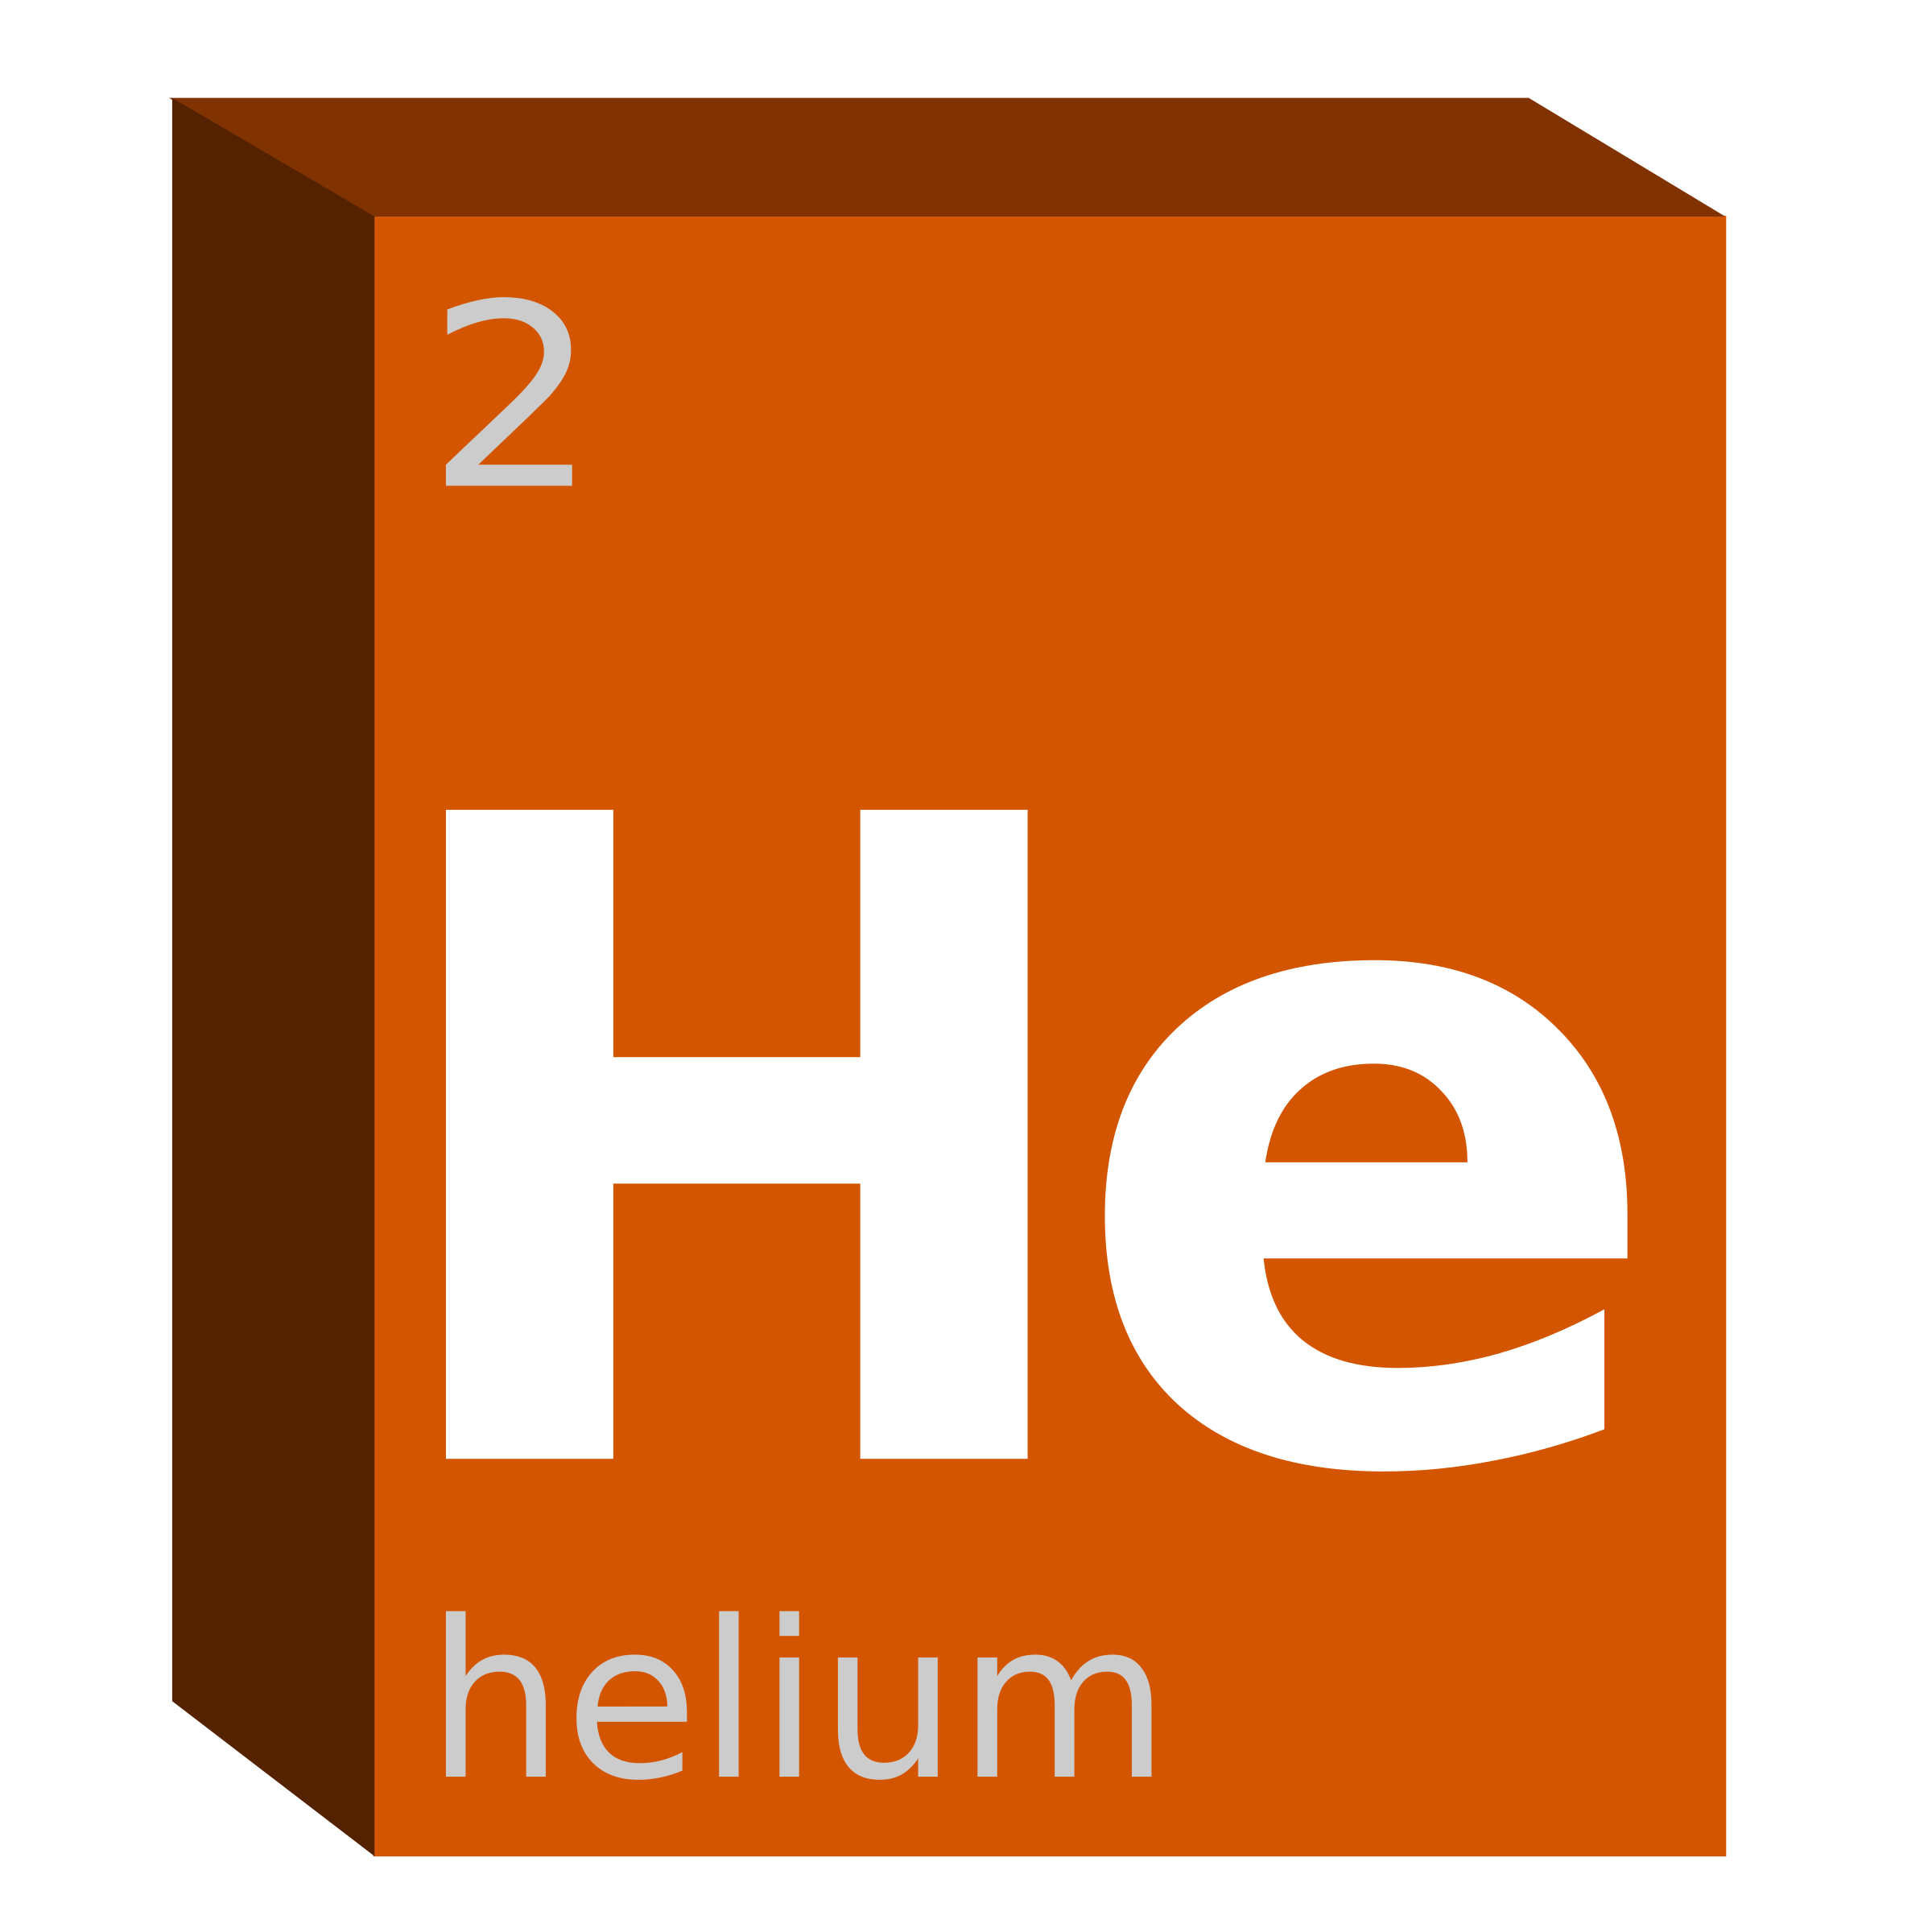 Elements clipart air Chemistry Block Chemistry Helium Helium